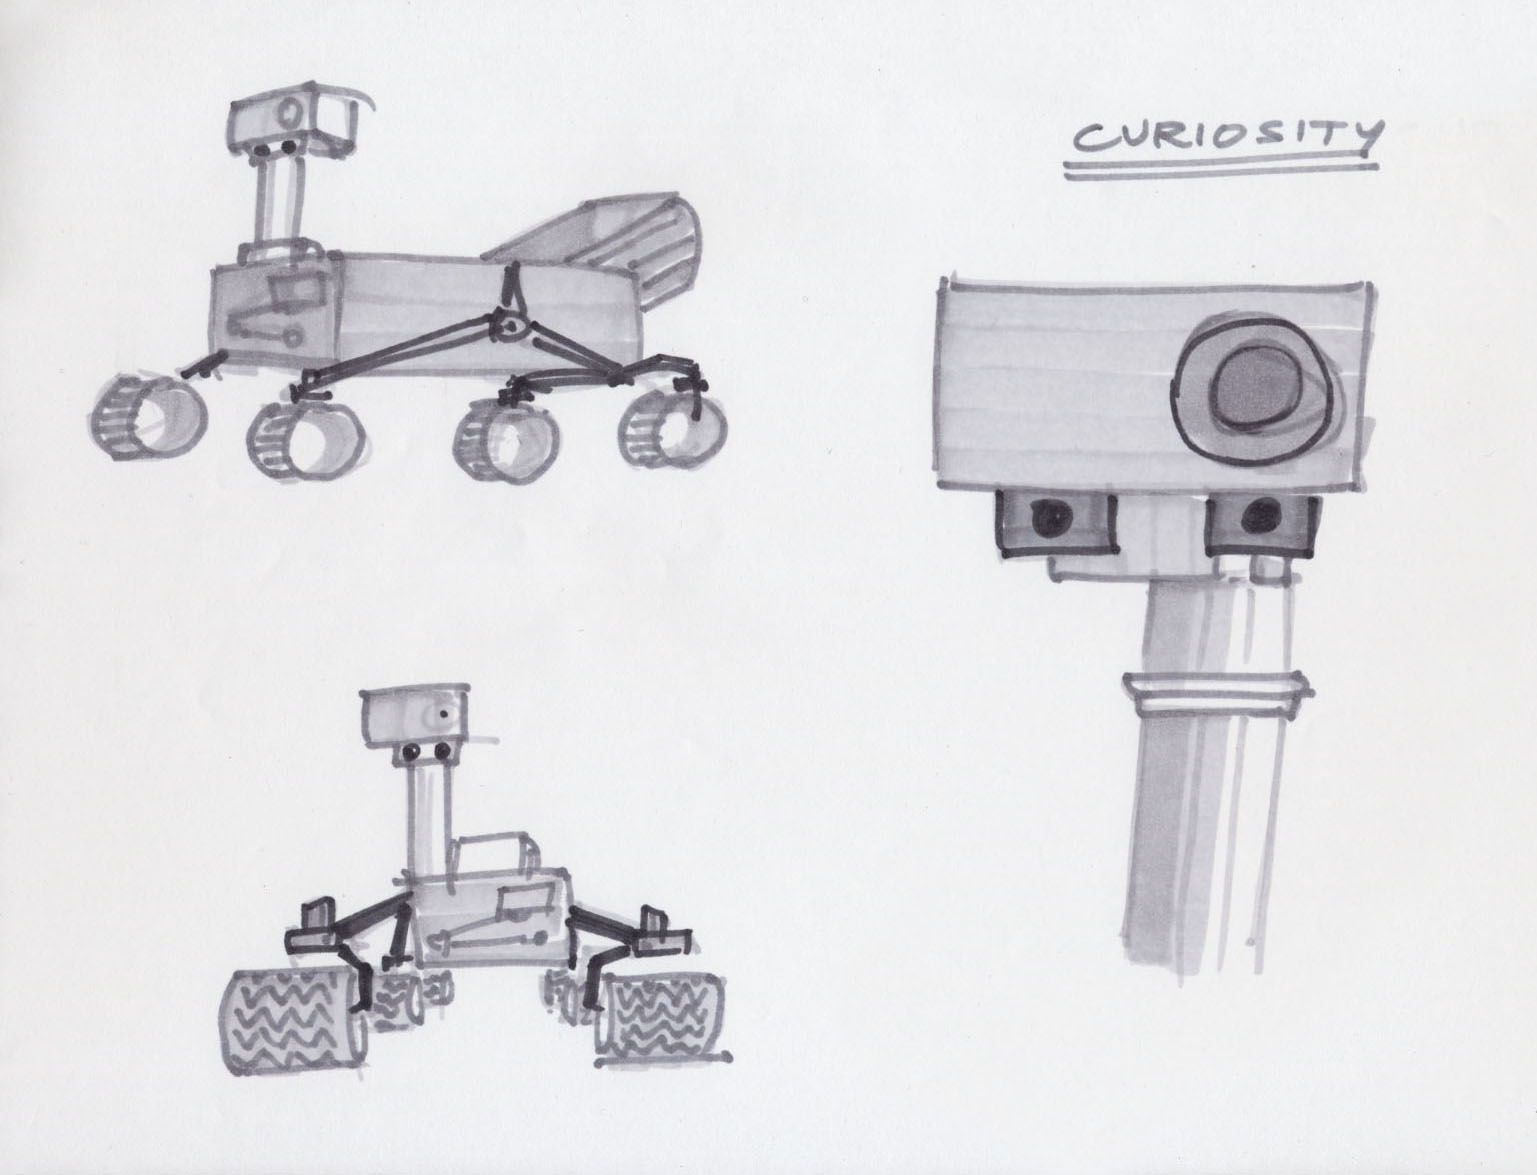 mars curiosity rover technical drawing - photo #15